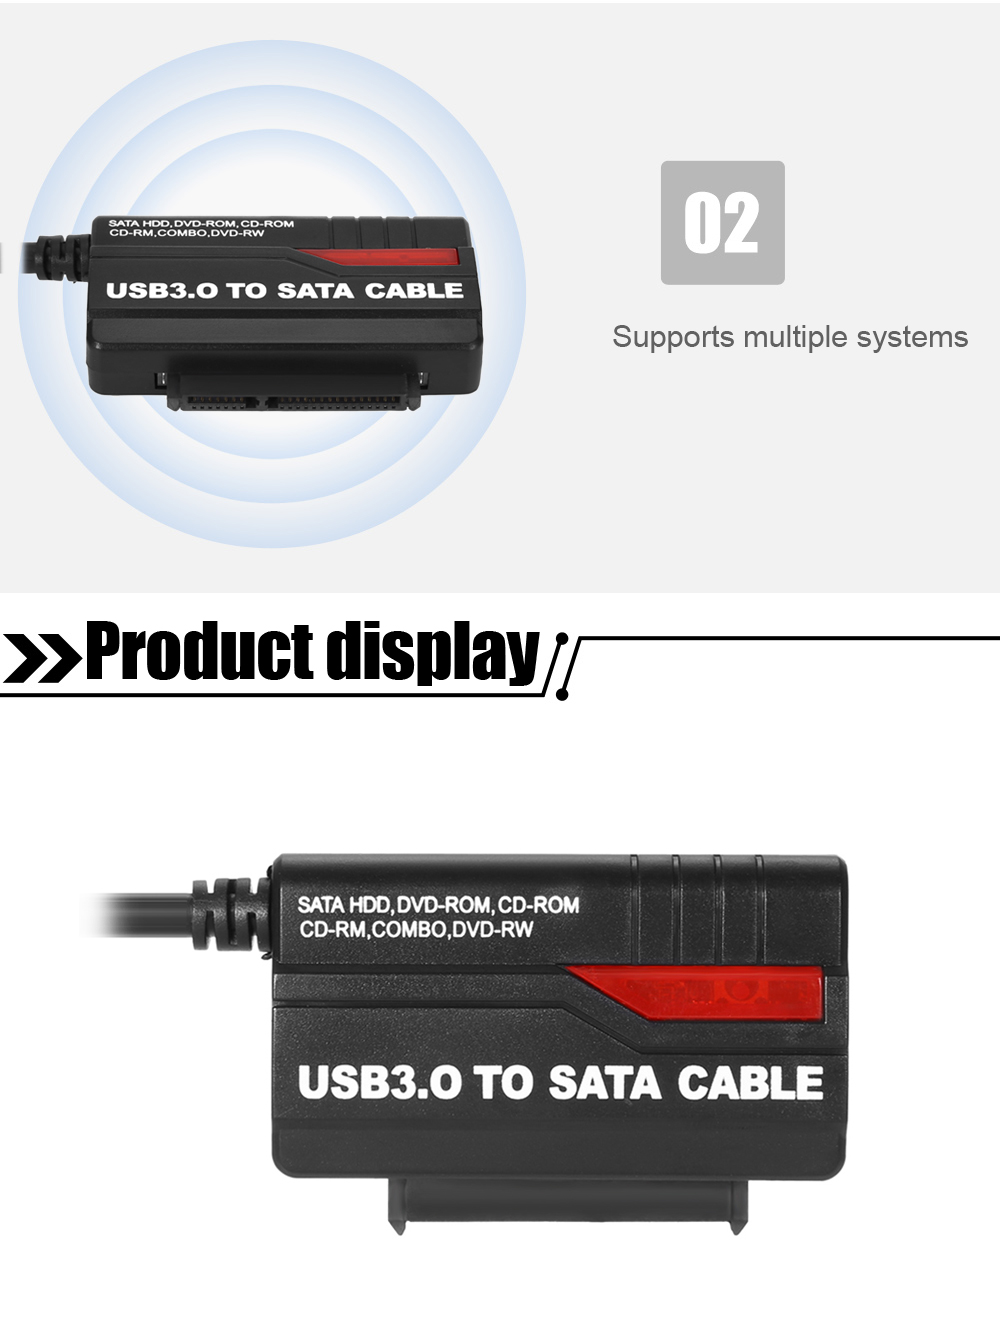 889u3 Usb 30 To 25 35 Inch Ide Sata Hdd Adapter 1499 Free Notebook Interface Cdrom External Drive Circuit Board 3 For Desktop Pc